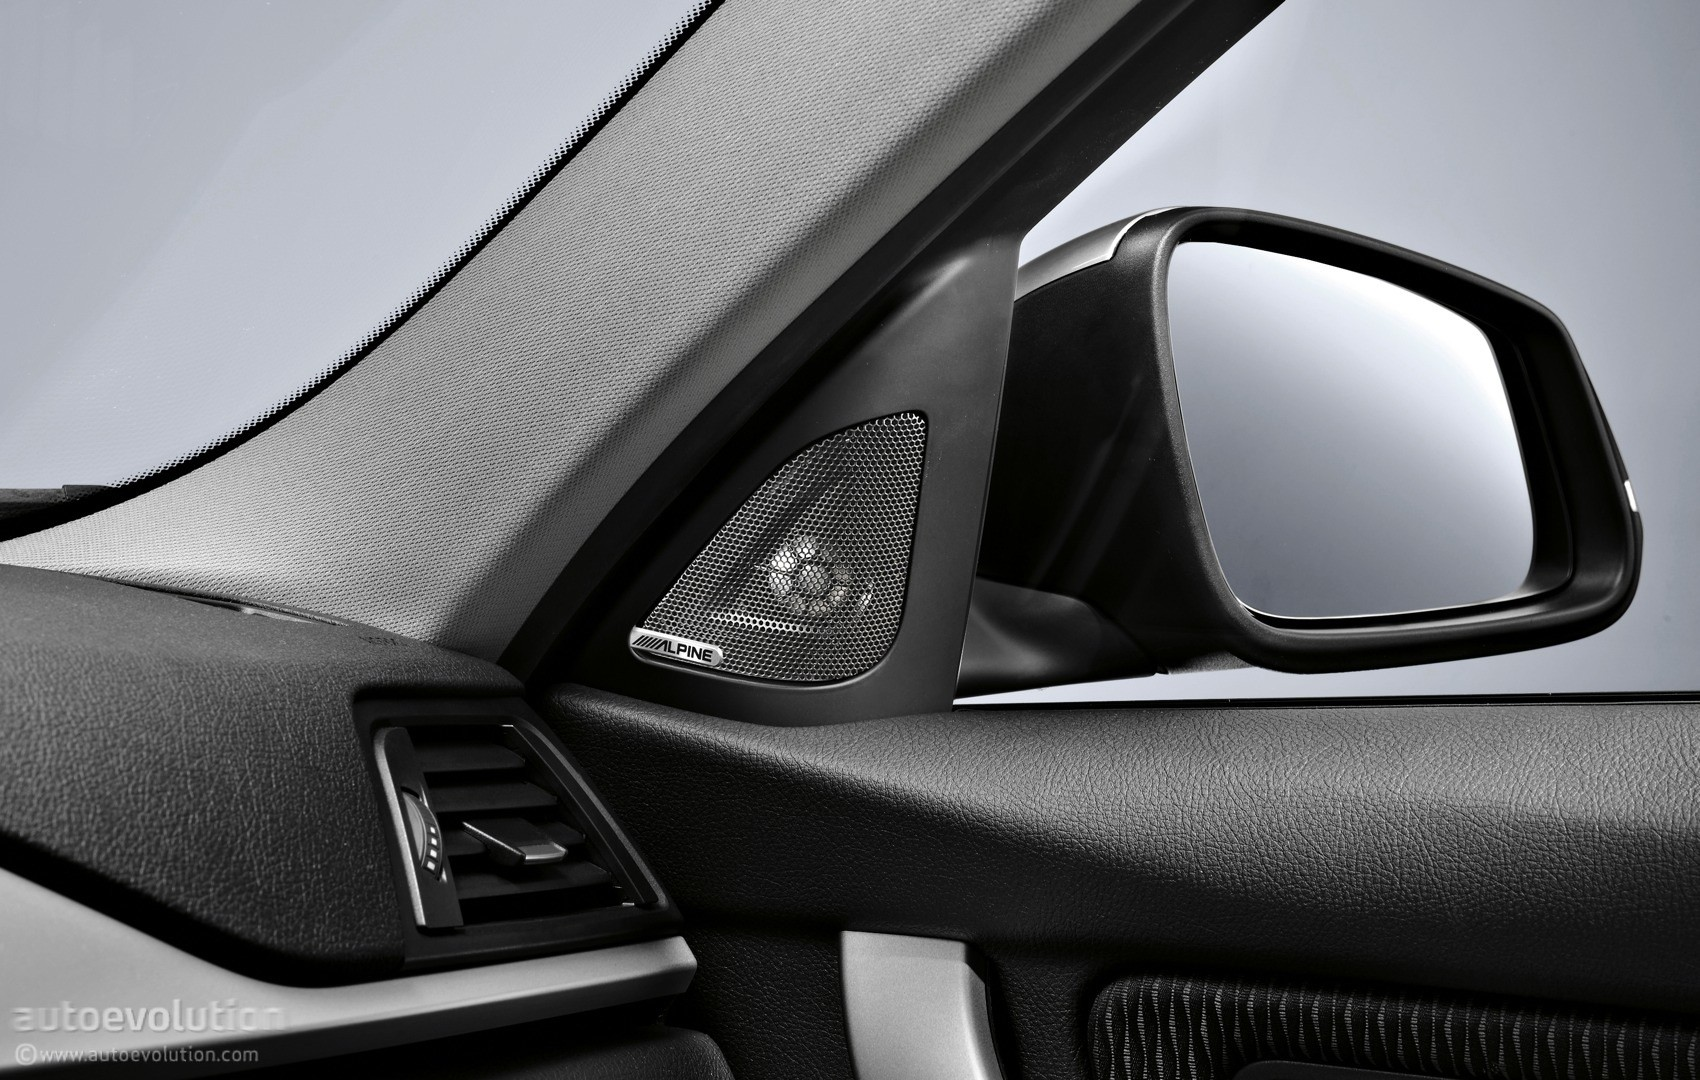 Bmw Launches Impressive Range Of Accessories As Christmas Gift Ideas Autoevolution